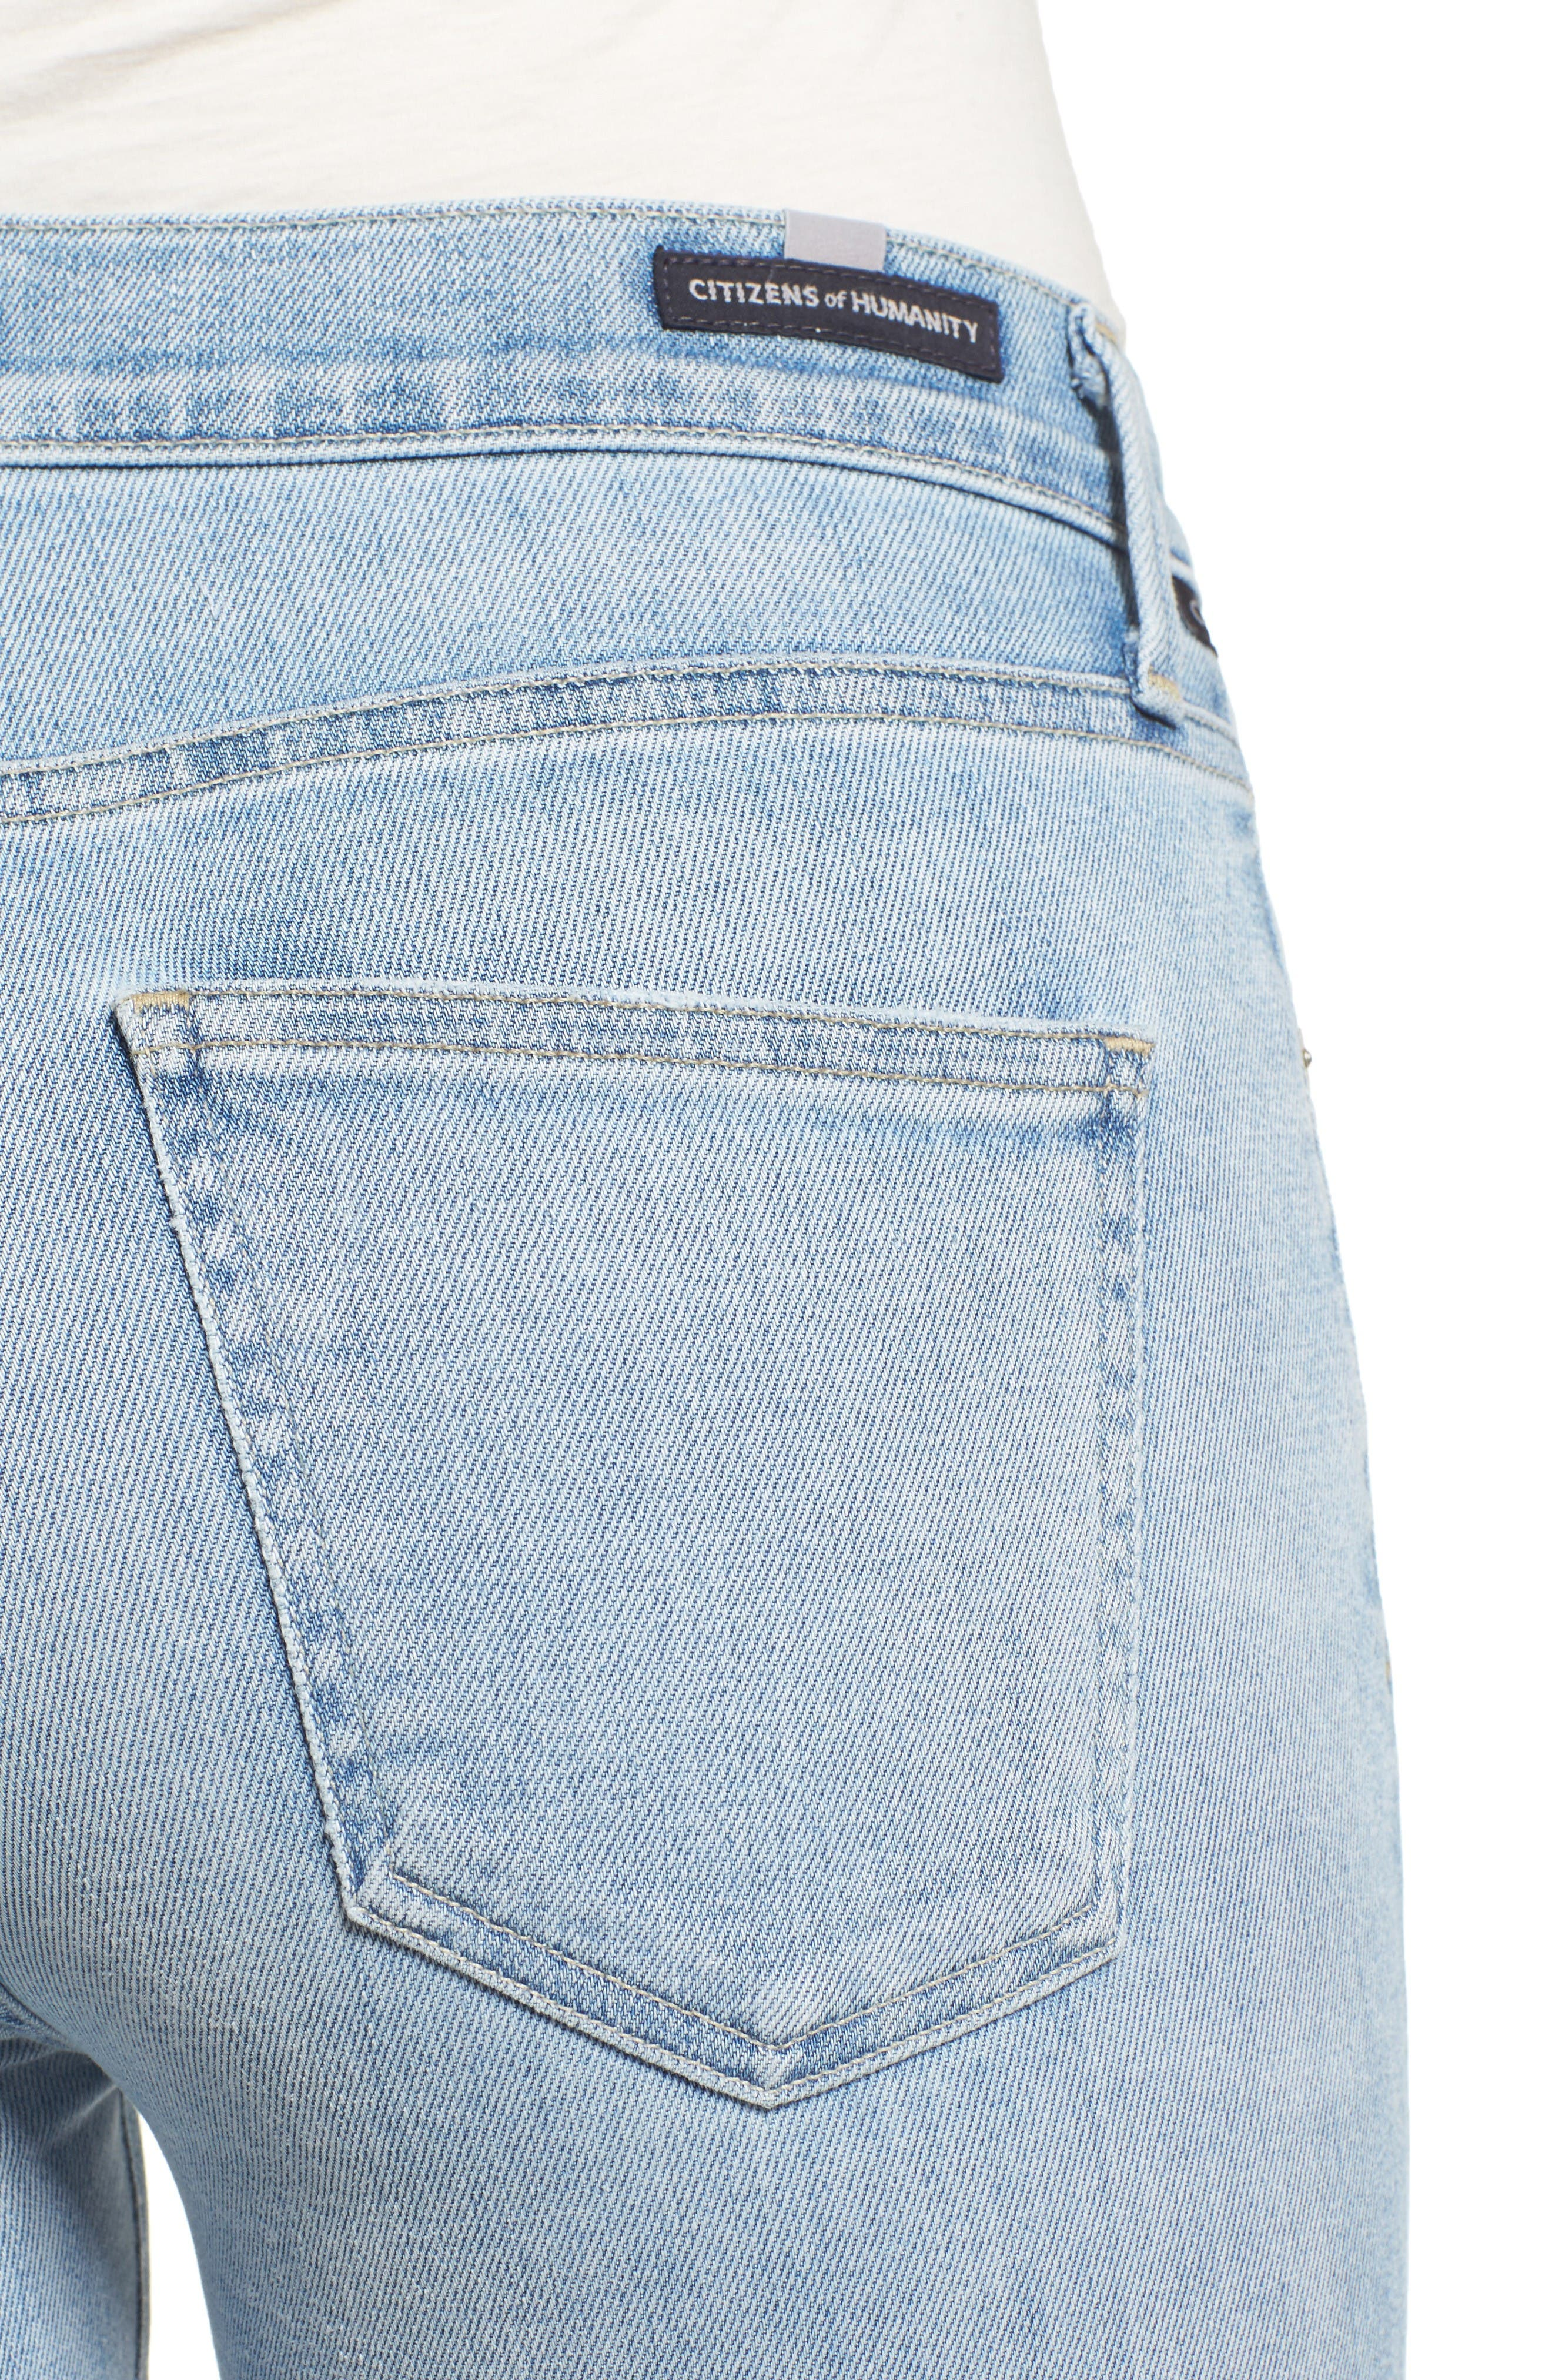 Alternate Image 4  - Citizens of Humanity Rocket High Waist Crop Skinny Jeans (Oracle Blue)